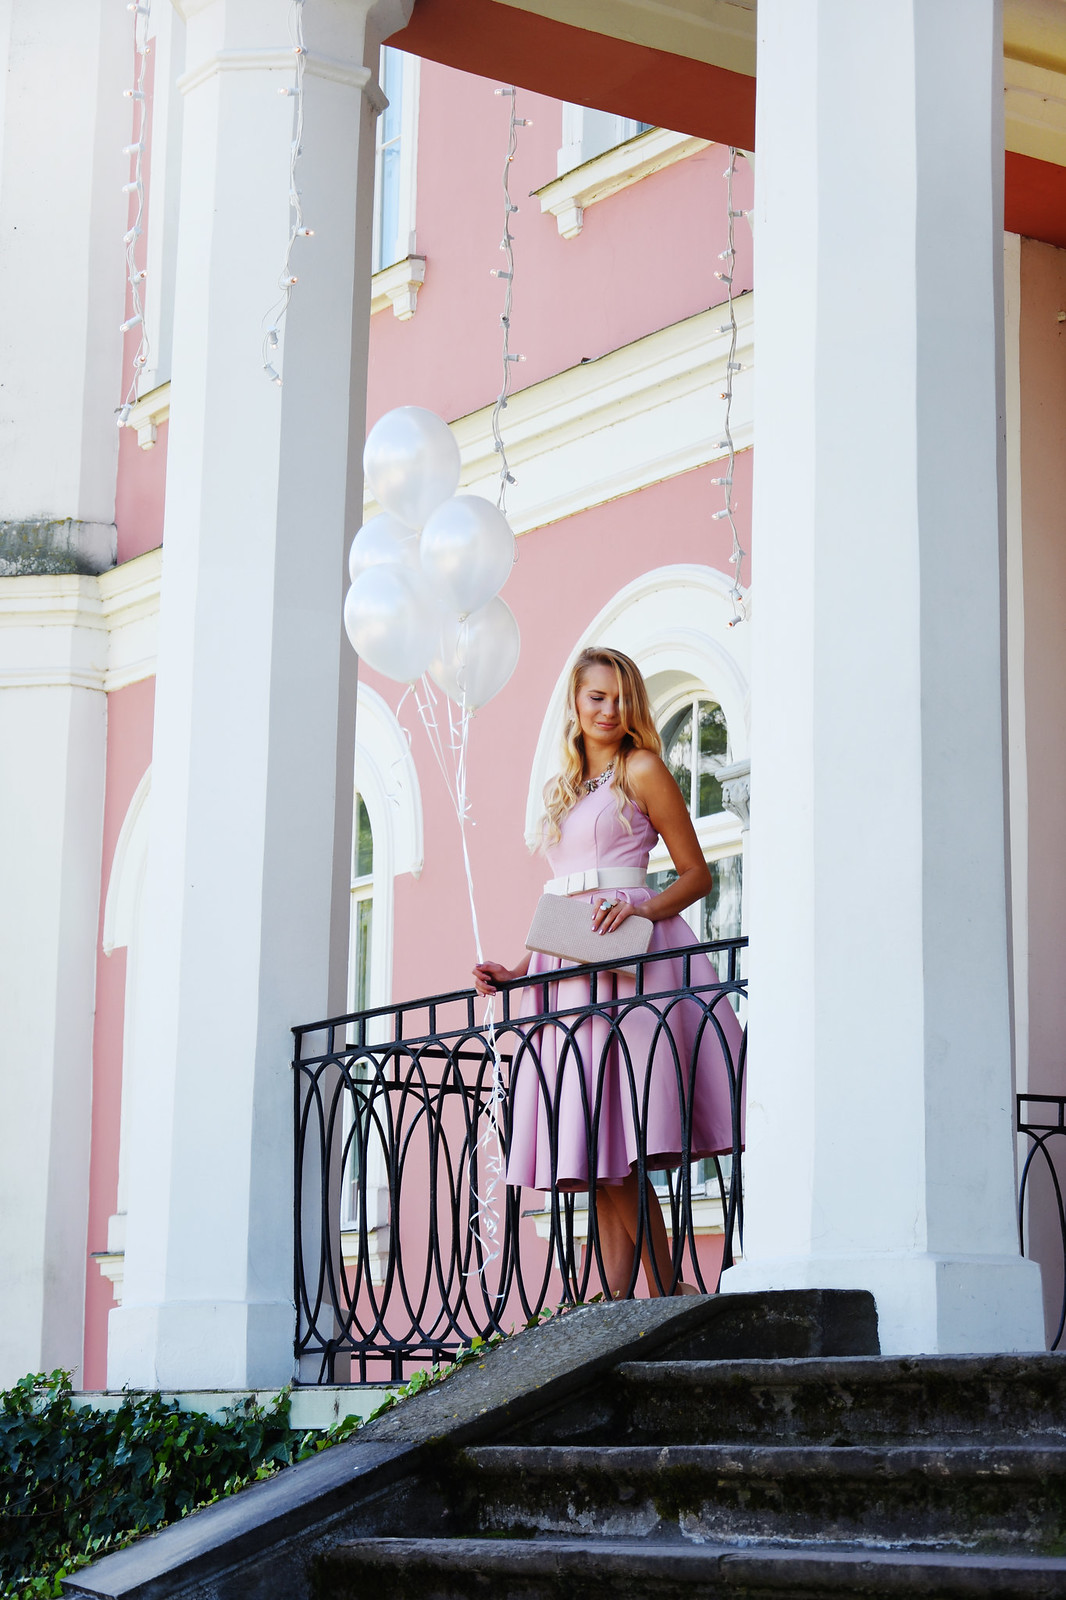 Fashion blogger from eastern Europe